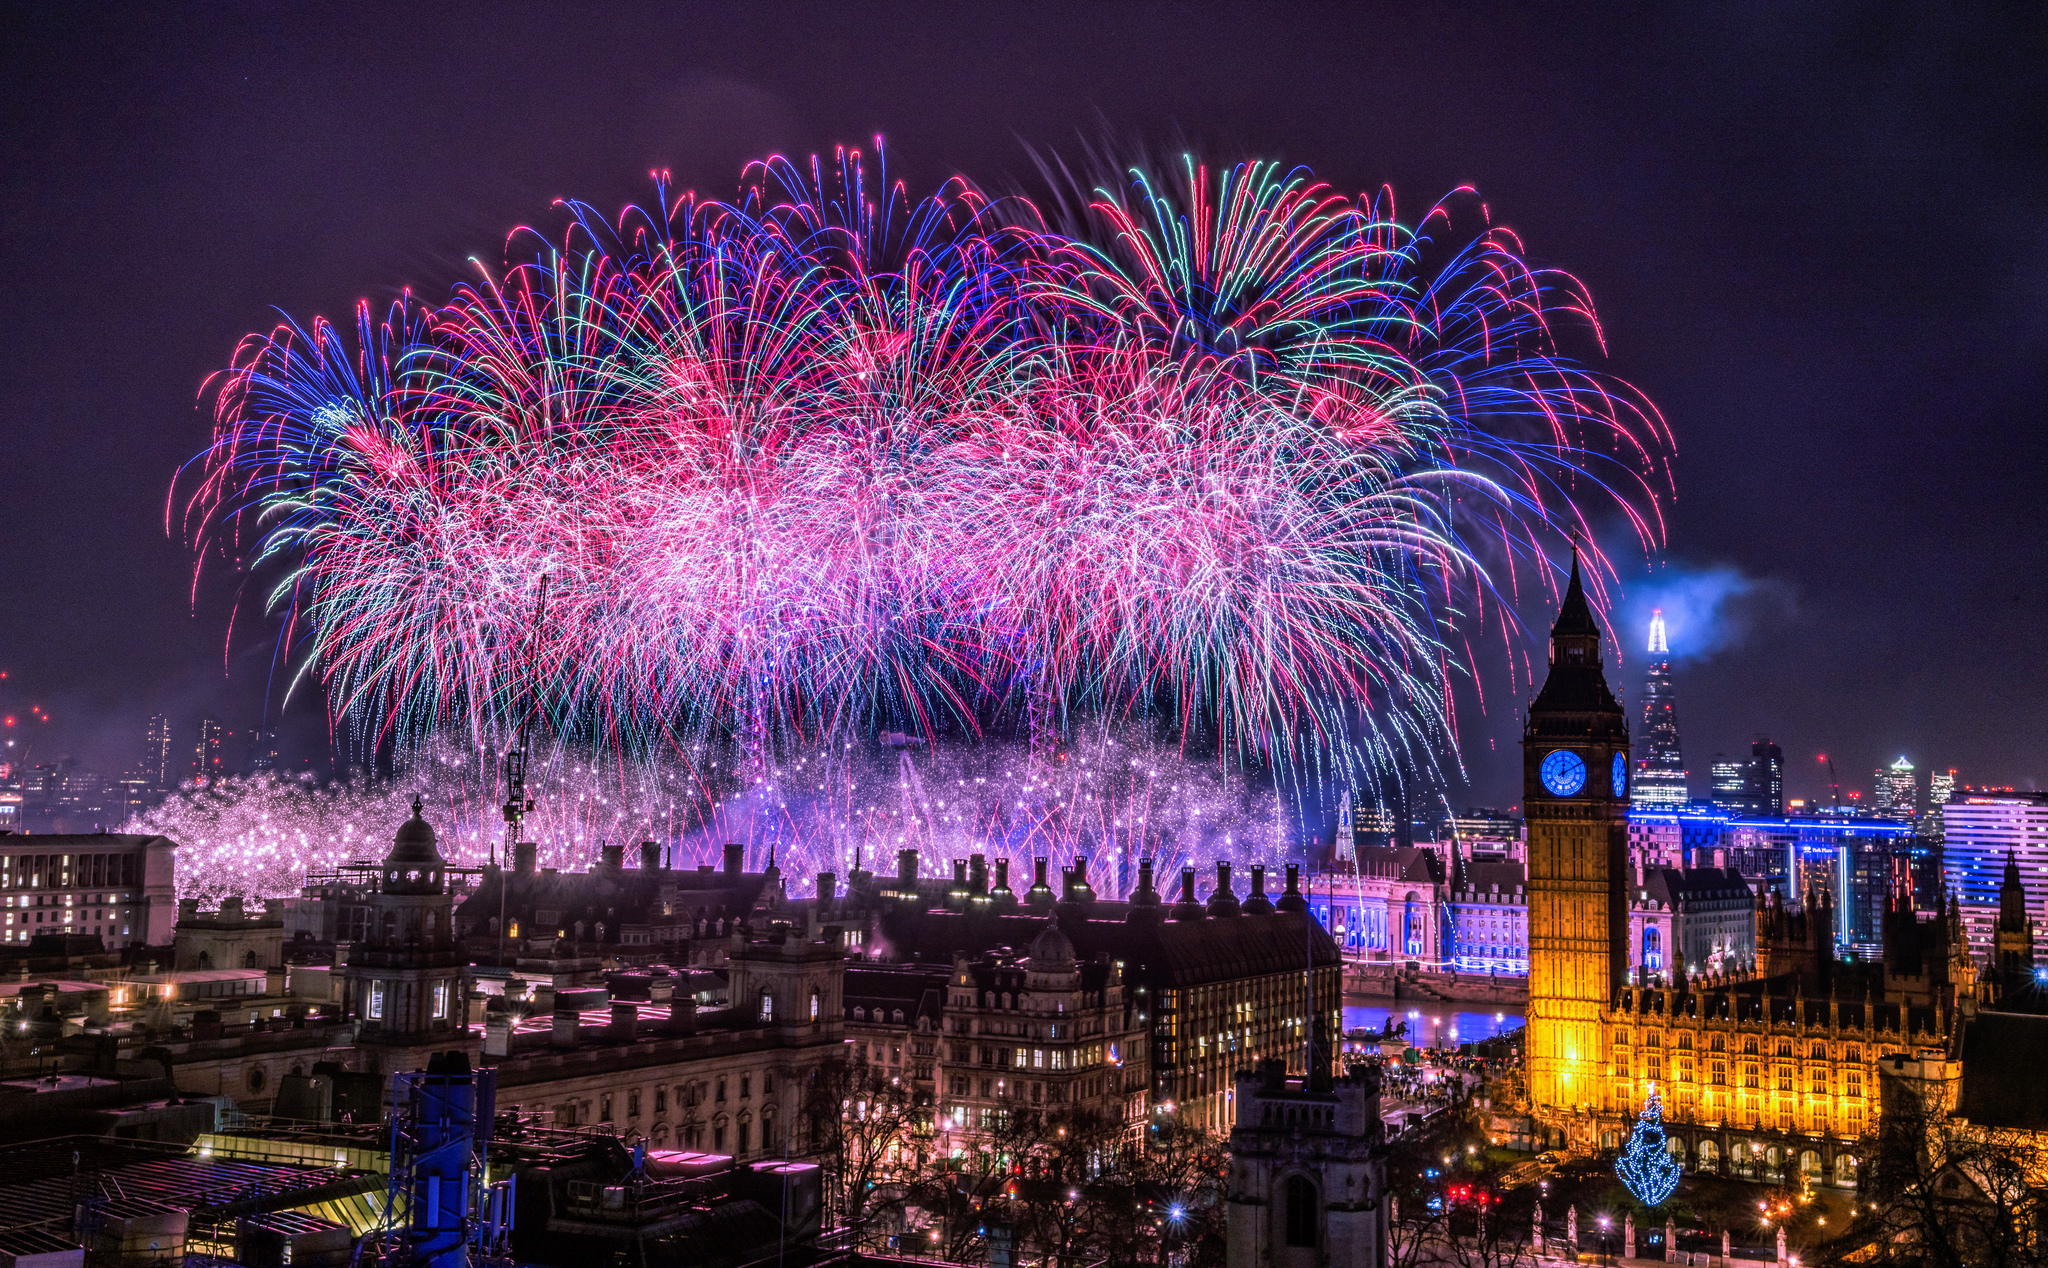 New Yearu0027s Eve 2019 in London  Biggest and Best Things To